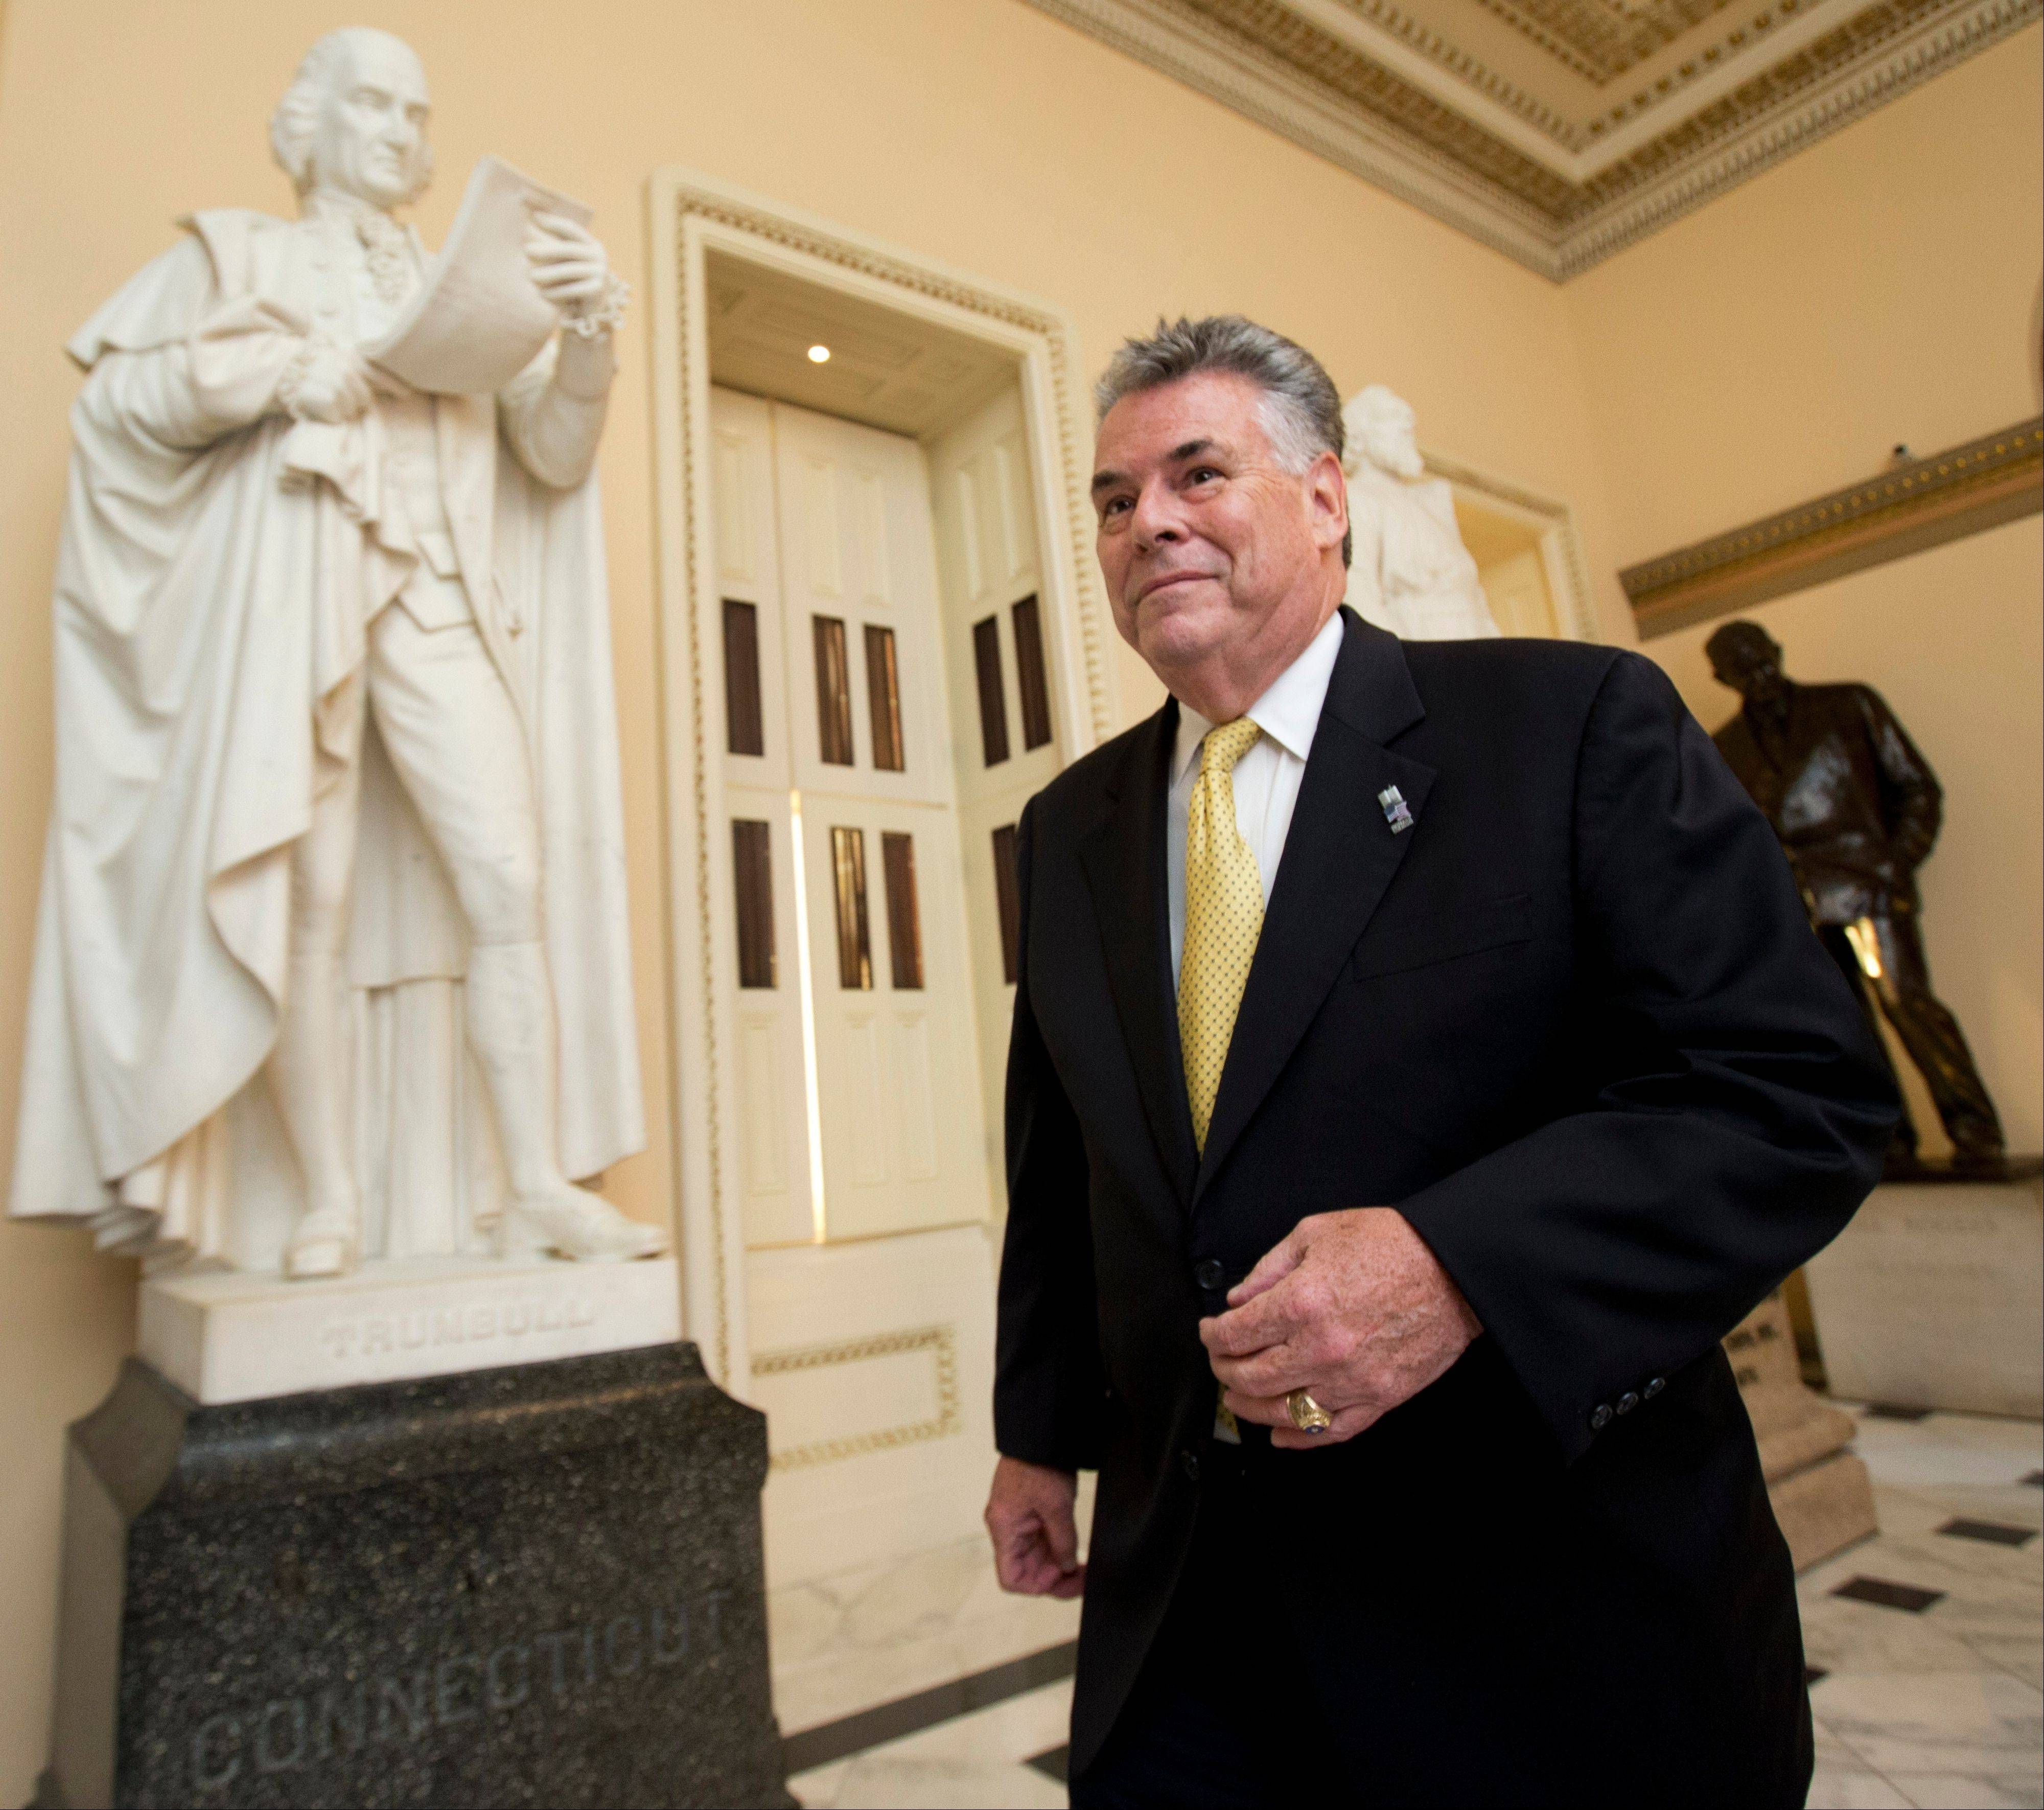 The Republican Party�s two Kings in Congress both voted against GOP leaders� latest effort to prevent President Barack Obama�s health care overhaul from becoming entrenched, but for opposite reasons. Rep. Peter King, R-N.Y., says it was a mistake to link curbing �Obamacare� with averting a government shutdown.